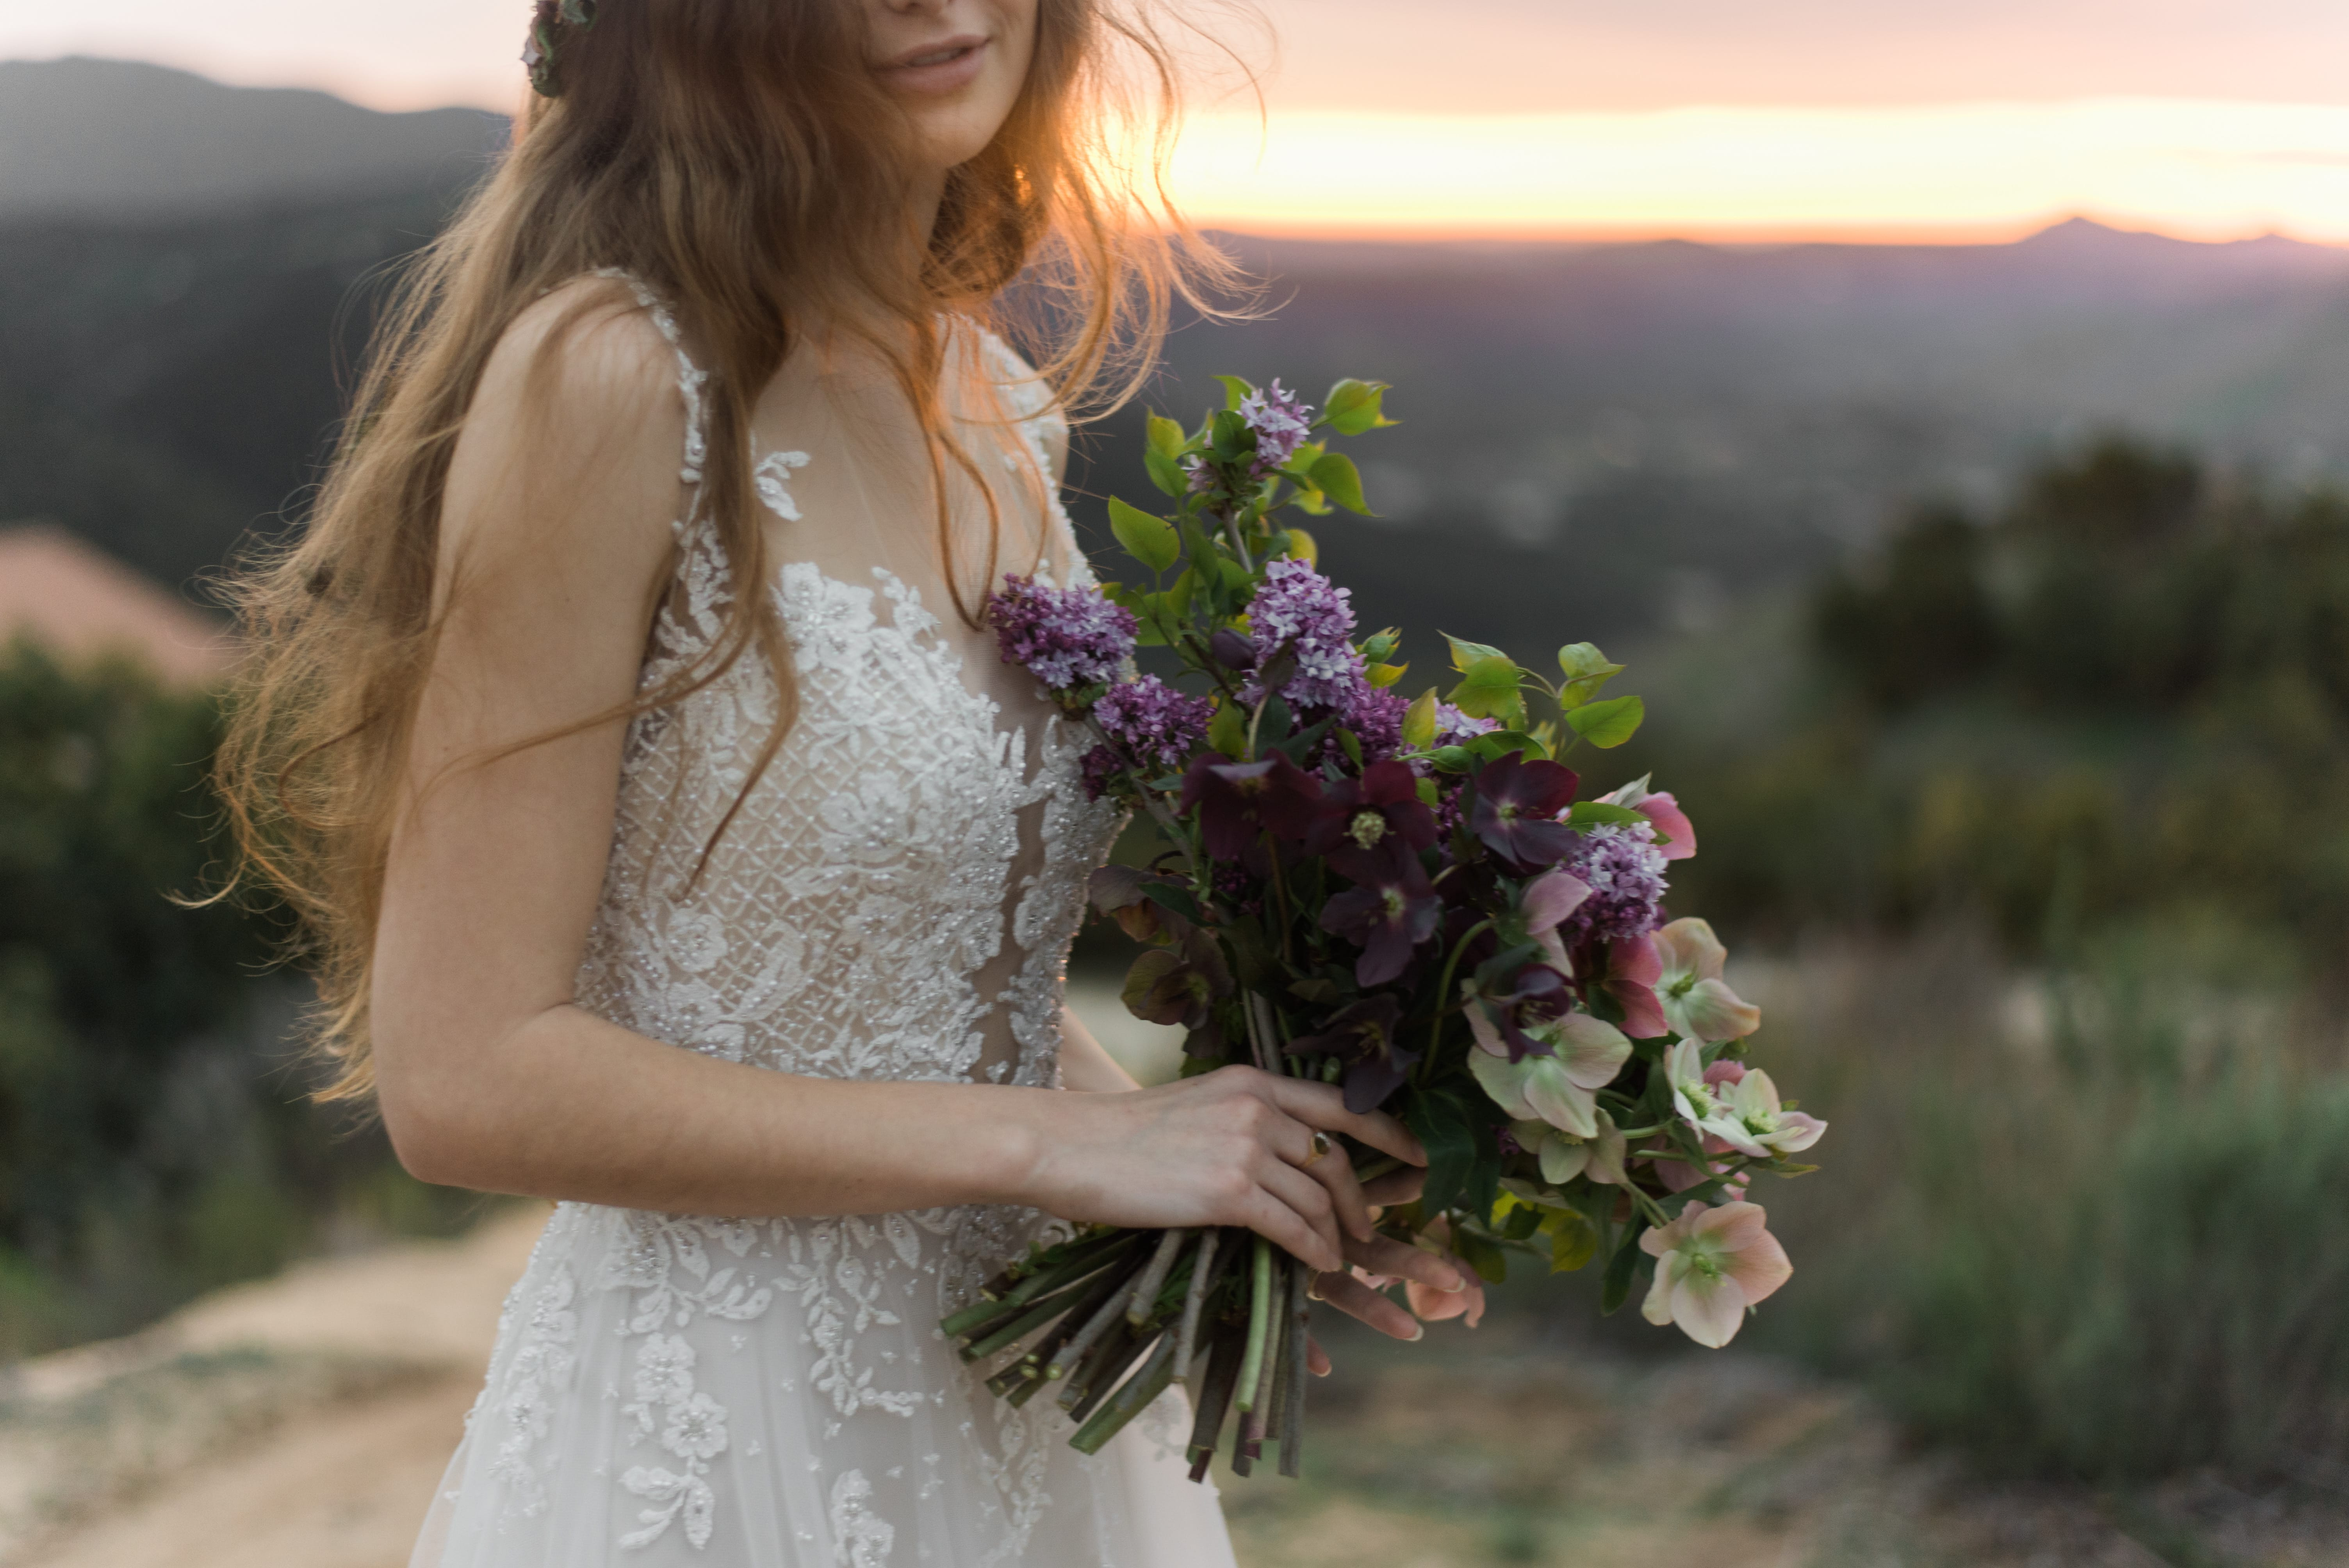 Your Wedding Day Horoscope Inspired by Pantone's Color of the Year, Ultra Violet - Emily by Maggie Sottero featuring Ultra Violet Flowers